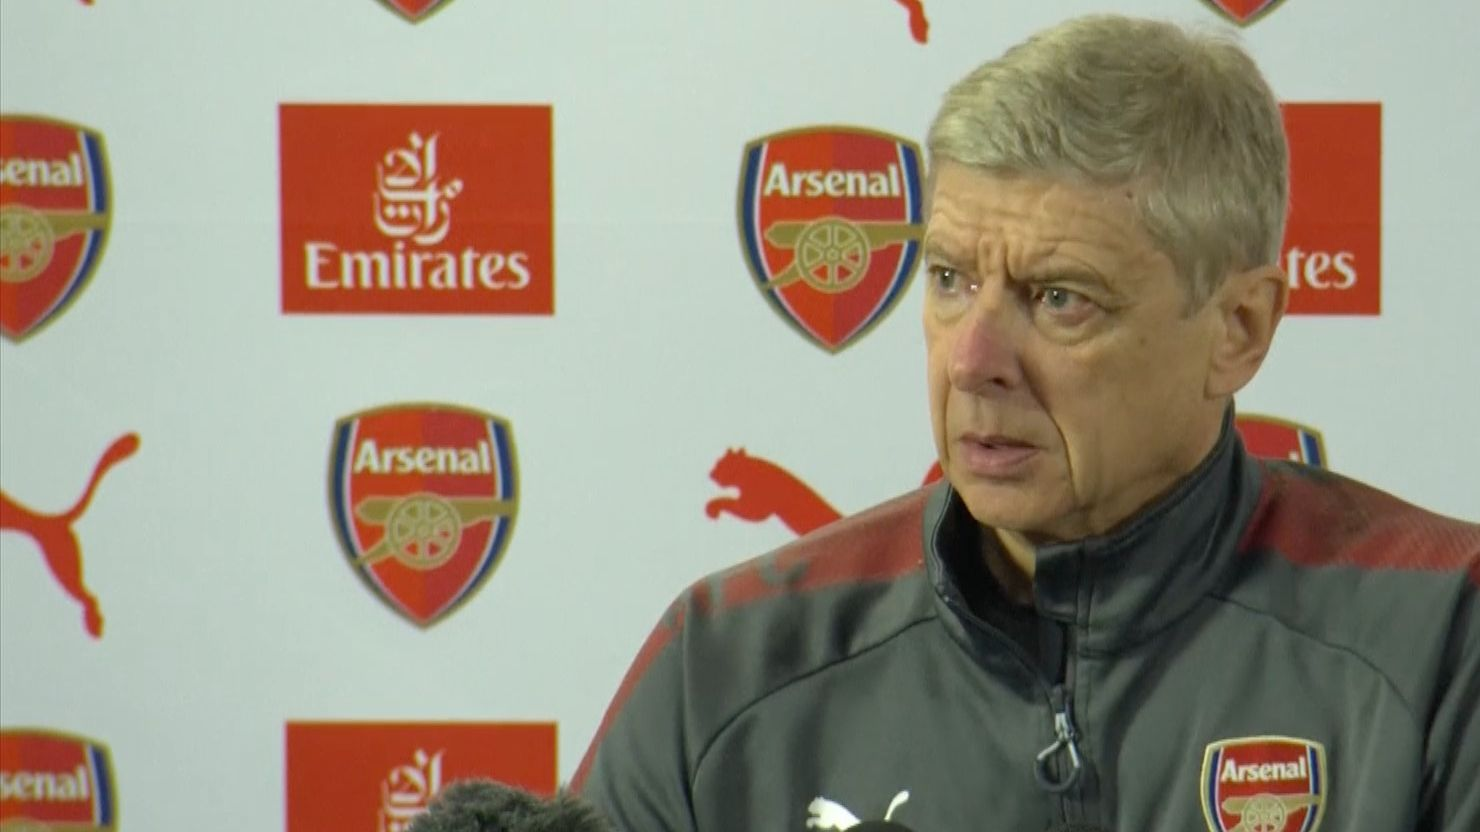 Wenger: Football can learn from sumo wrestling